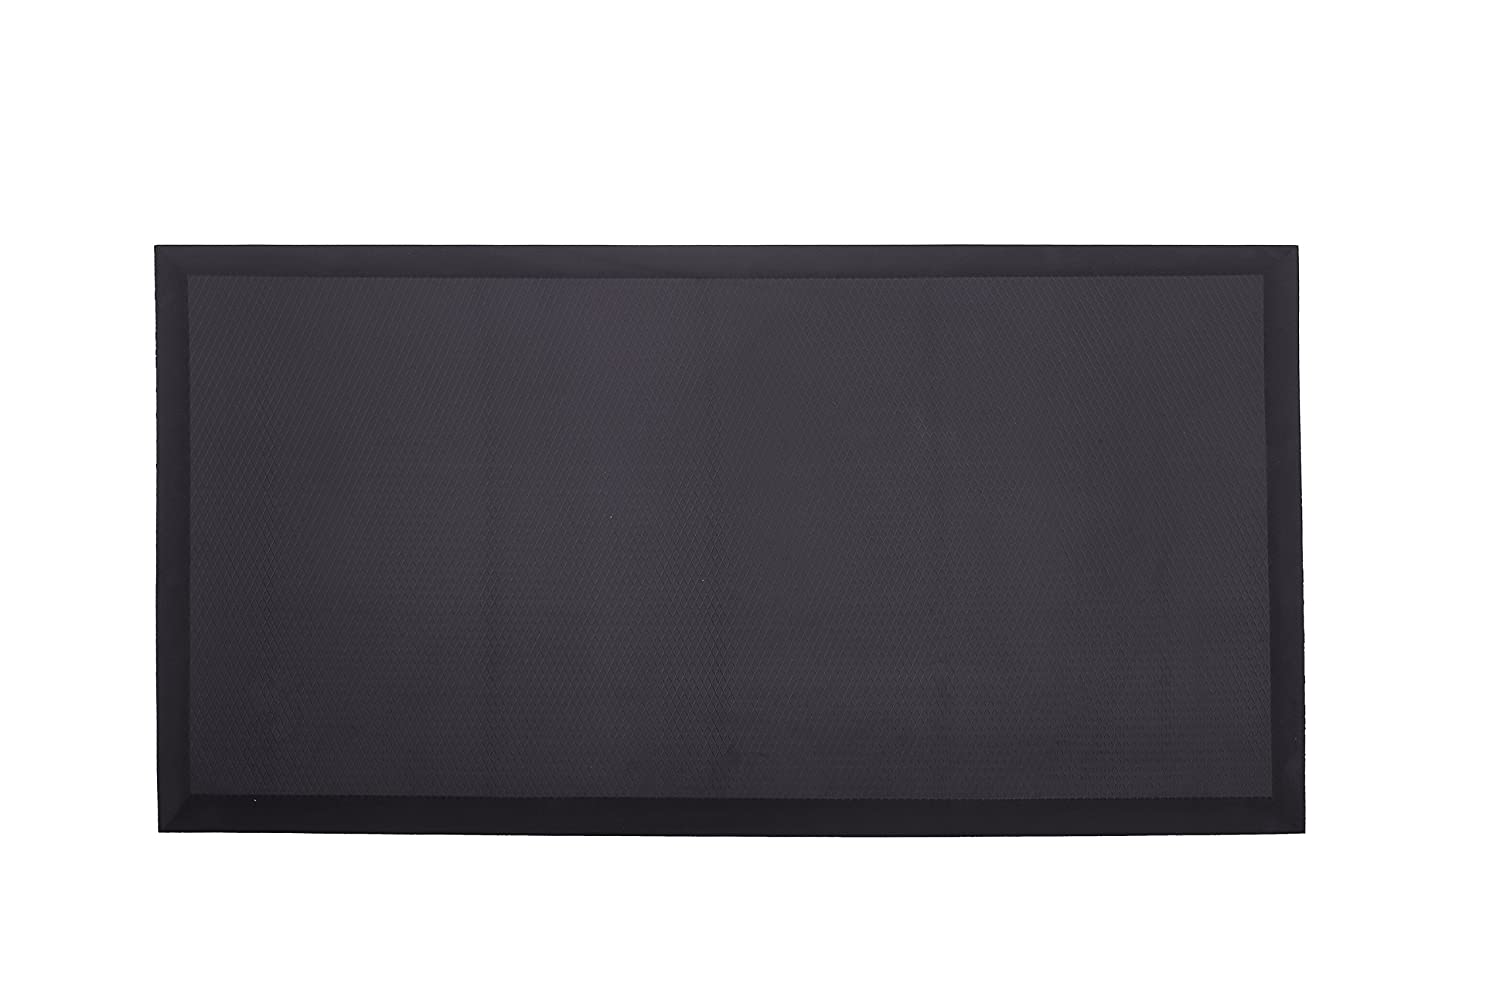 Amcomfy Standing Desk Mat Comfort Floor Mat Anti Fatigue Mat for Office (20